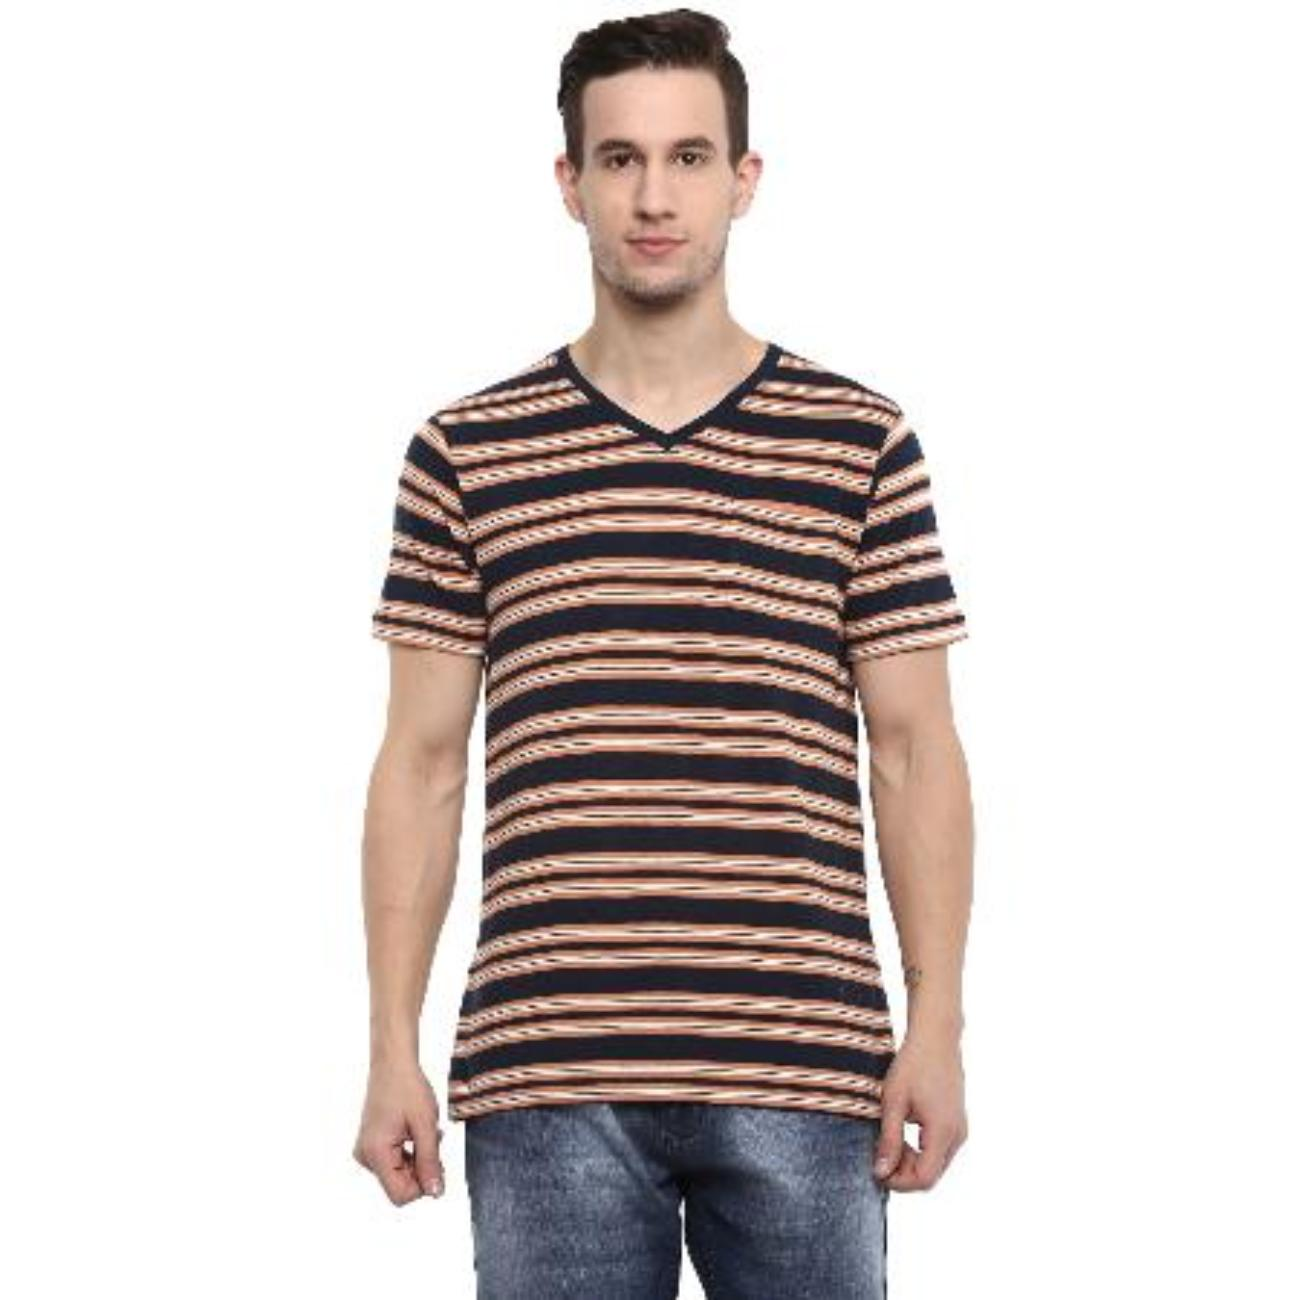 Mens Cotton Half Sleeves Tshirt from Red Chief